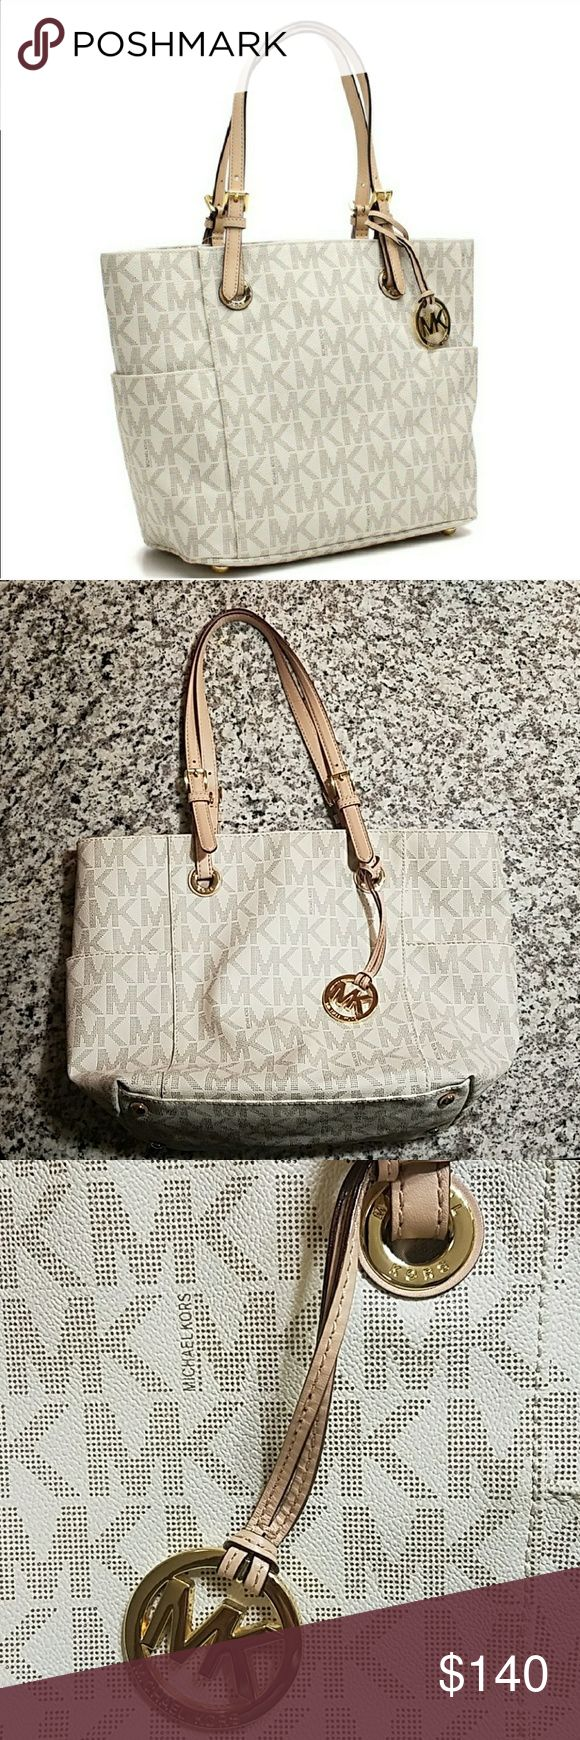 Michael Kors Jet Set Vanilla East West Tote Authentic MICHAEL Michael Kors Jet Set East West tote. MK logo in cream. Barely used. Excellent condition, looks new. Does not include duster bag. Michael Kors Bags Totes